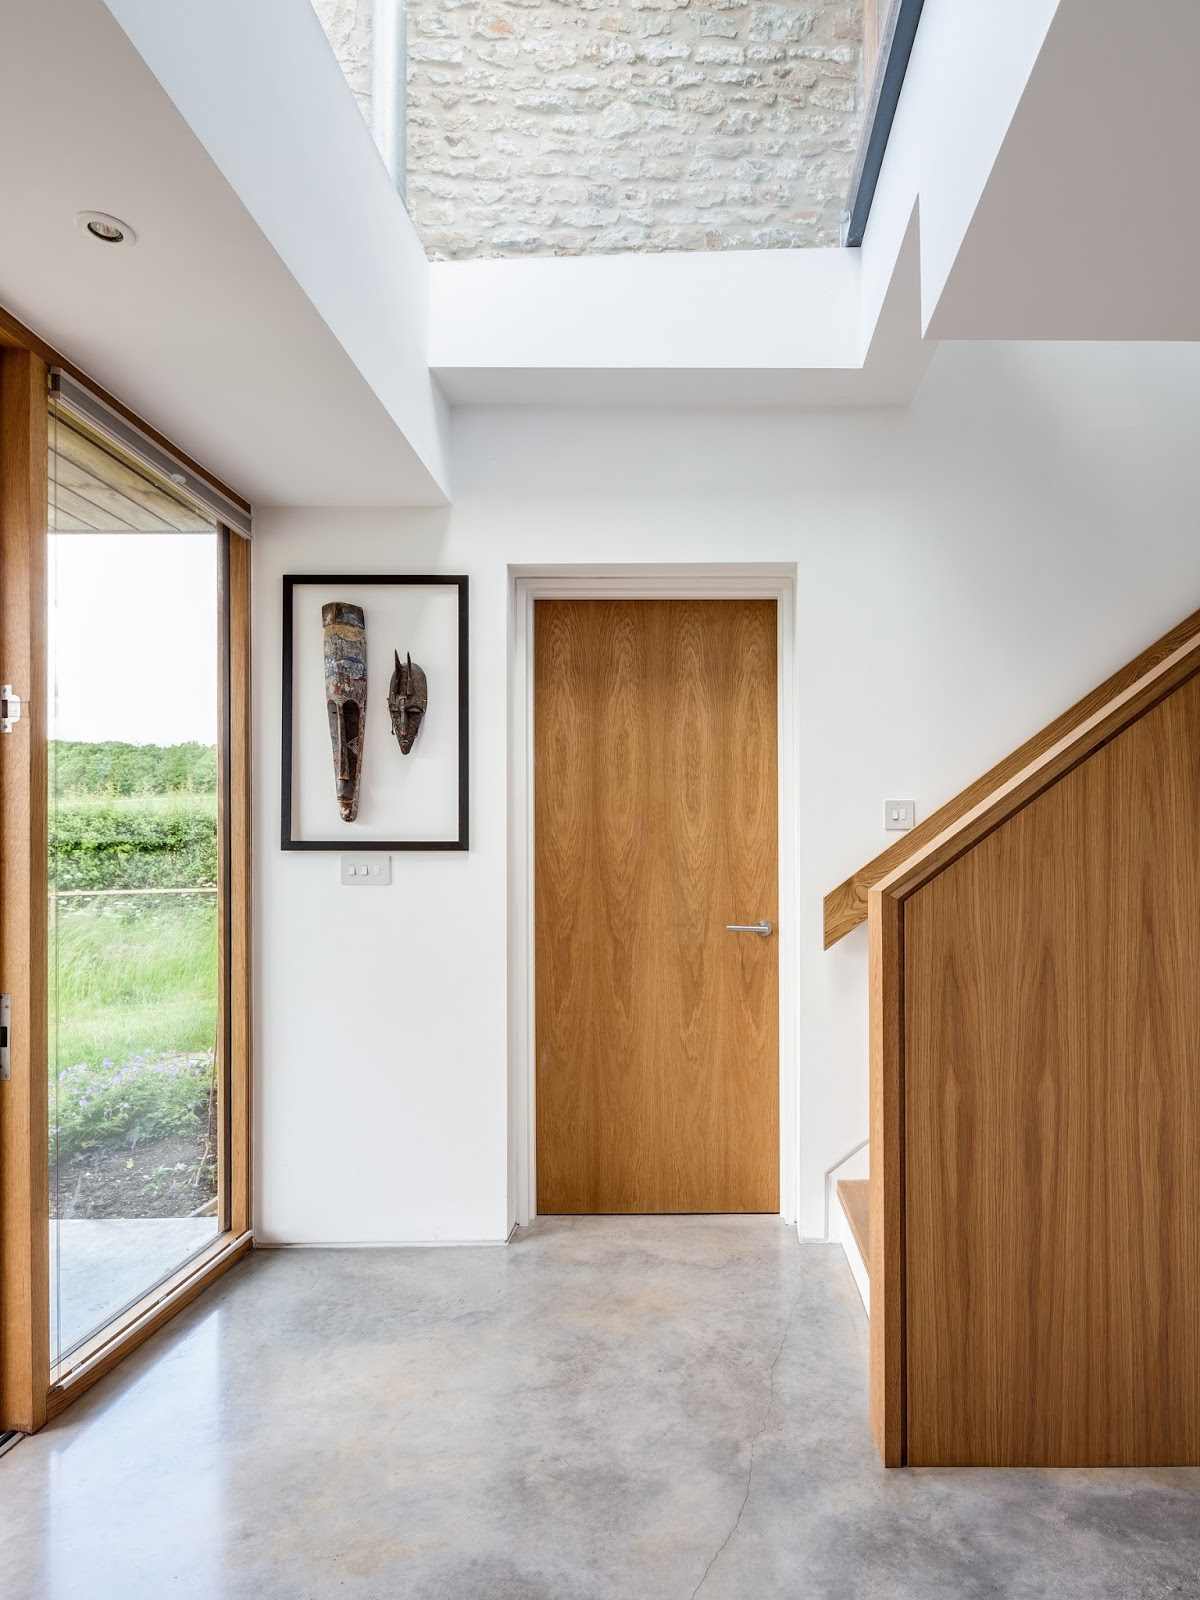 and the new open plan modern extension whose large windows offer fabulous views over the landscape and which lends itself to entertaining